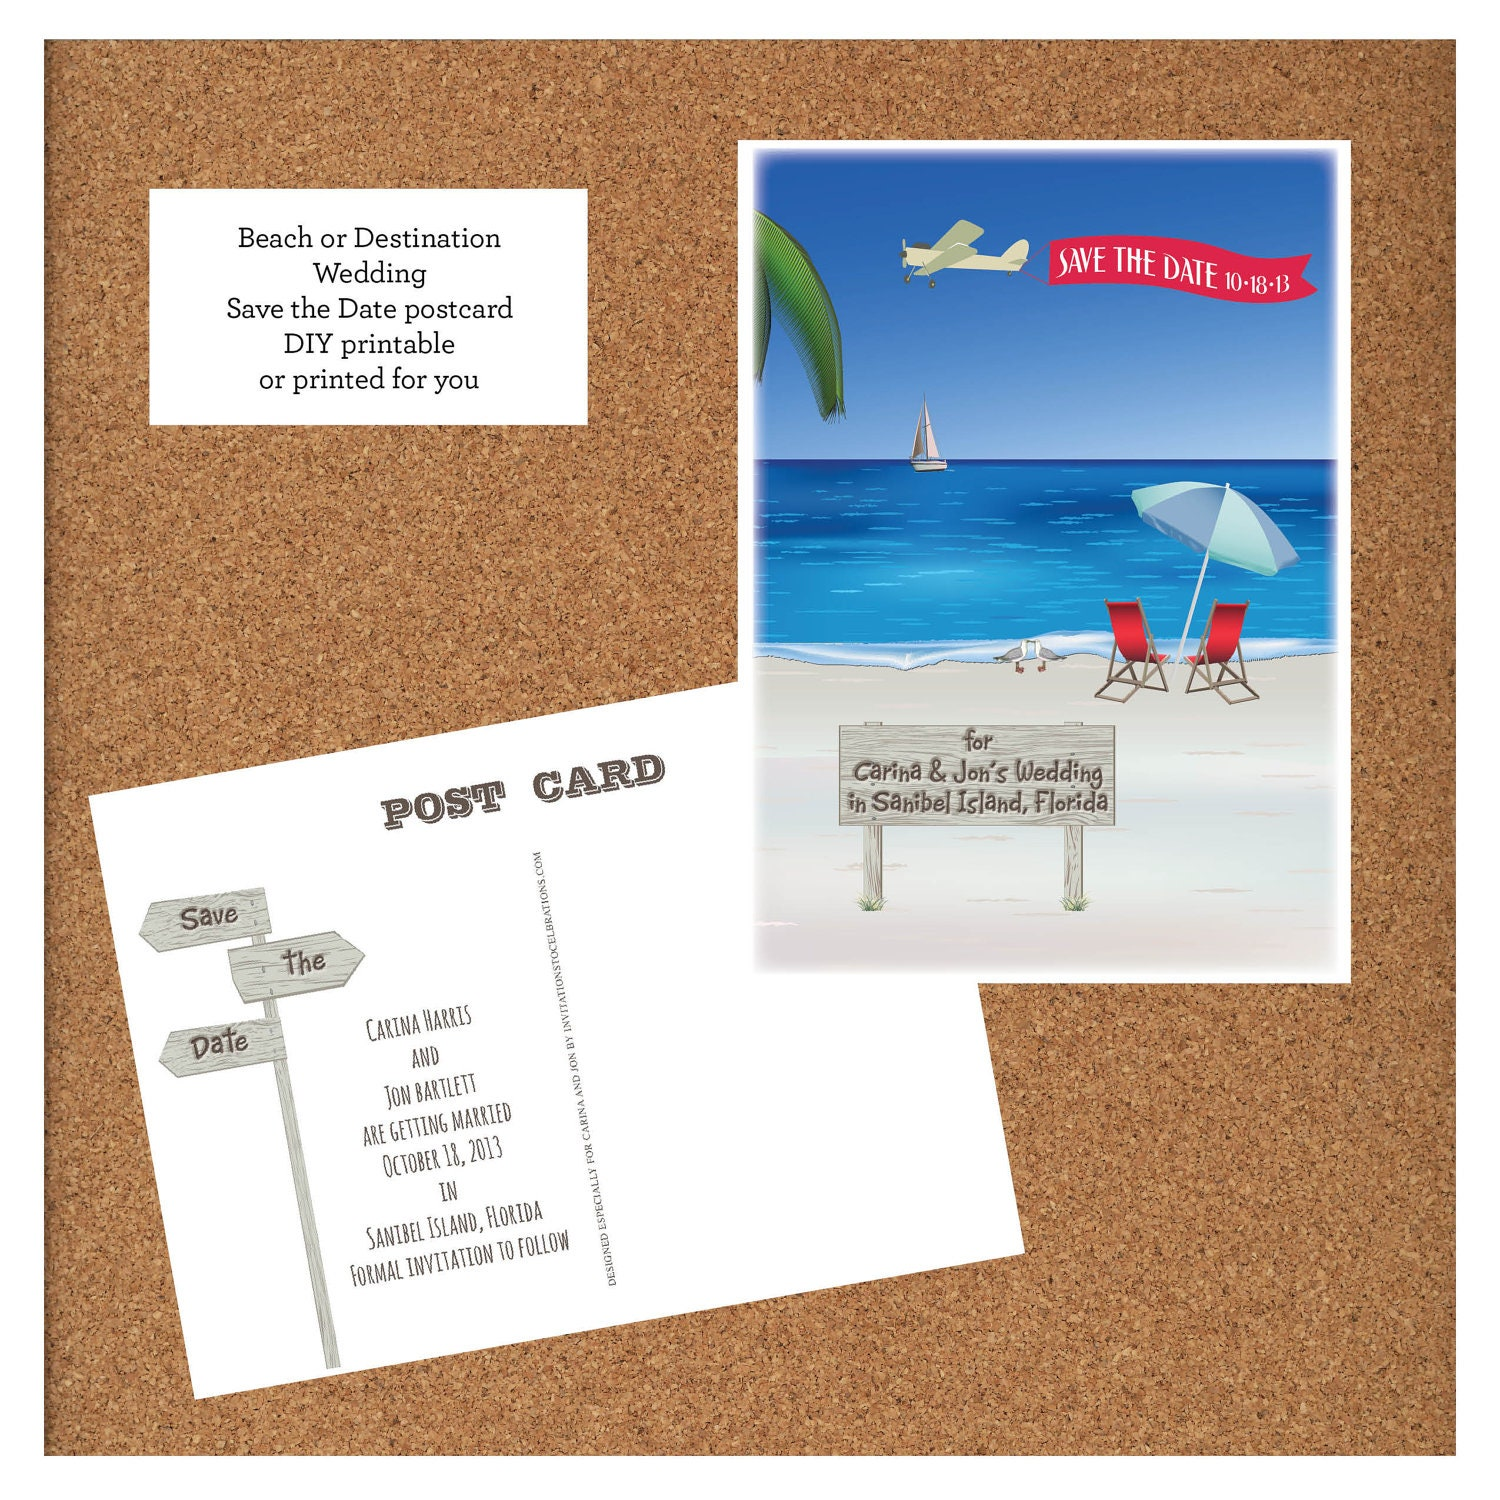 beach destination wedding save the date postcard diy by itcoa